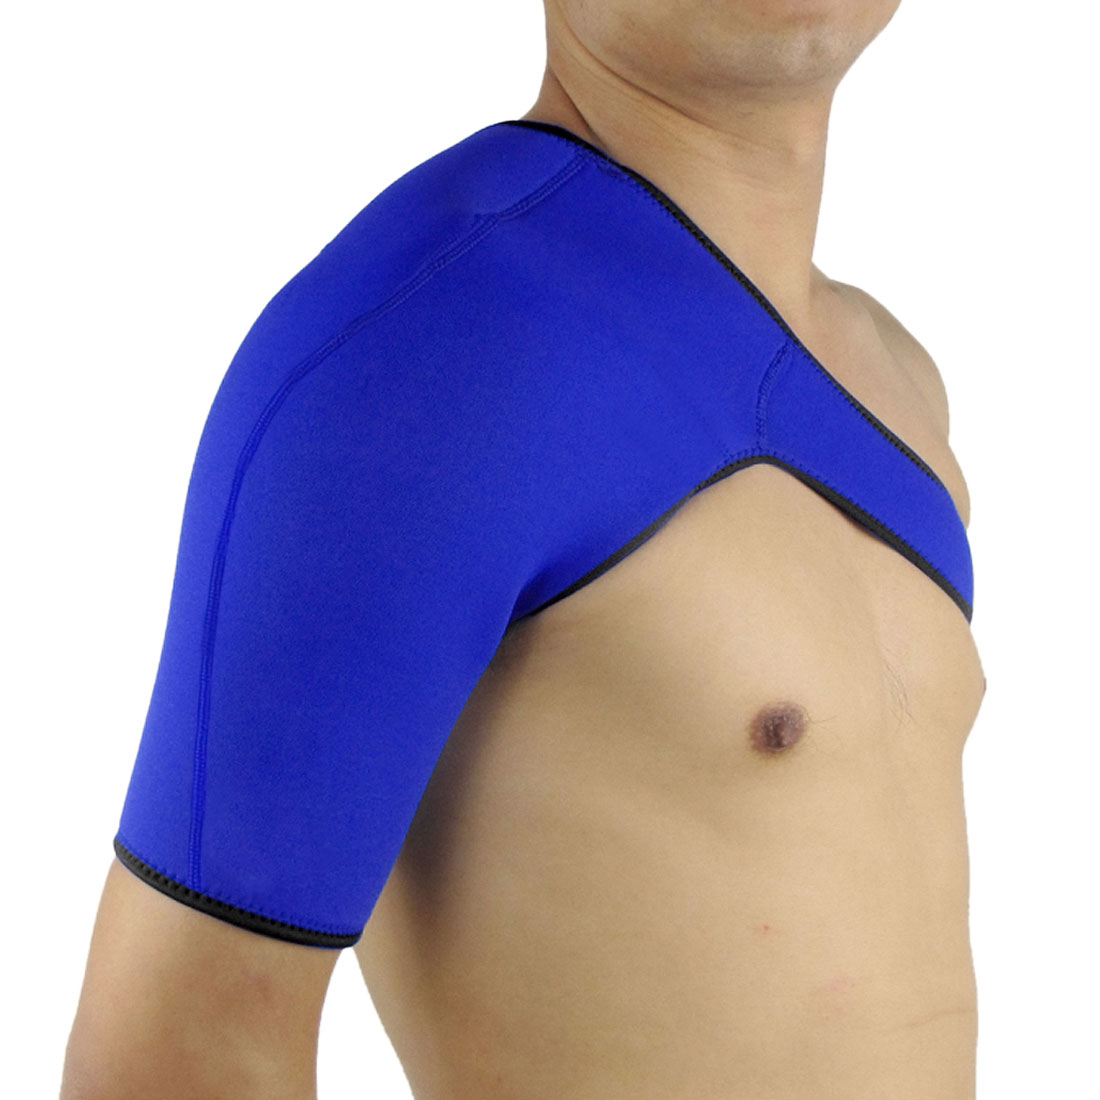 Shoulder Brace Sleeves Support Neoprene Pain Relieve Stabilize Protect Injuries